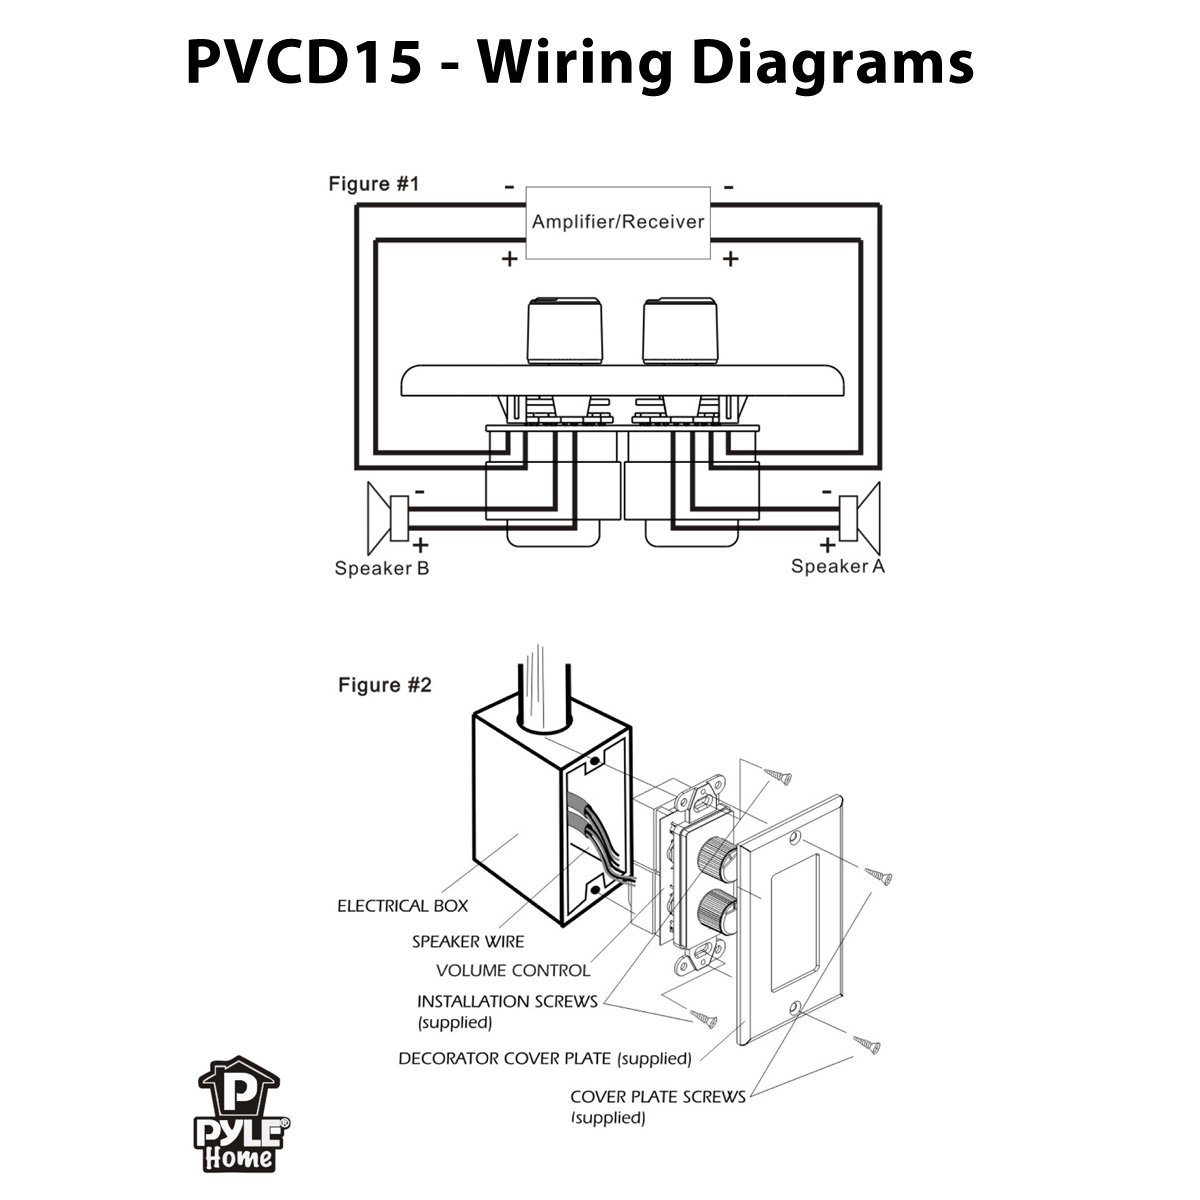 61Ncb6E88oL._SL1200_ amazon com pylehome pvcd15 in wall two right and left speaker home theater speaker wiring diagrams at eliteediting.co